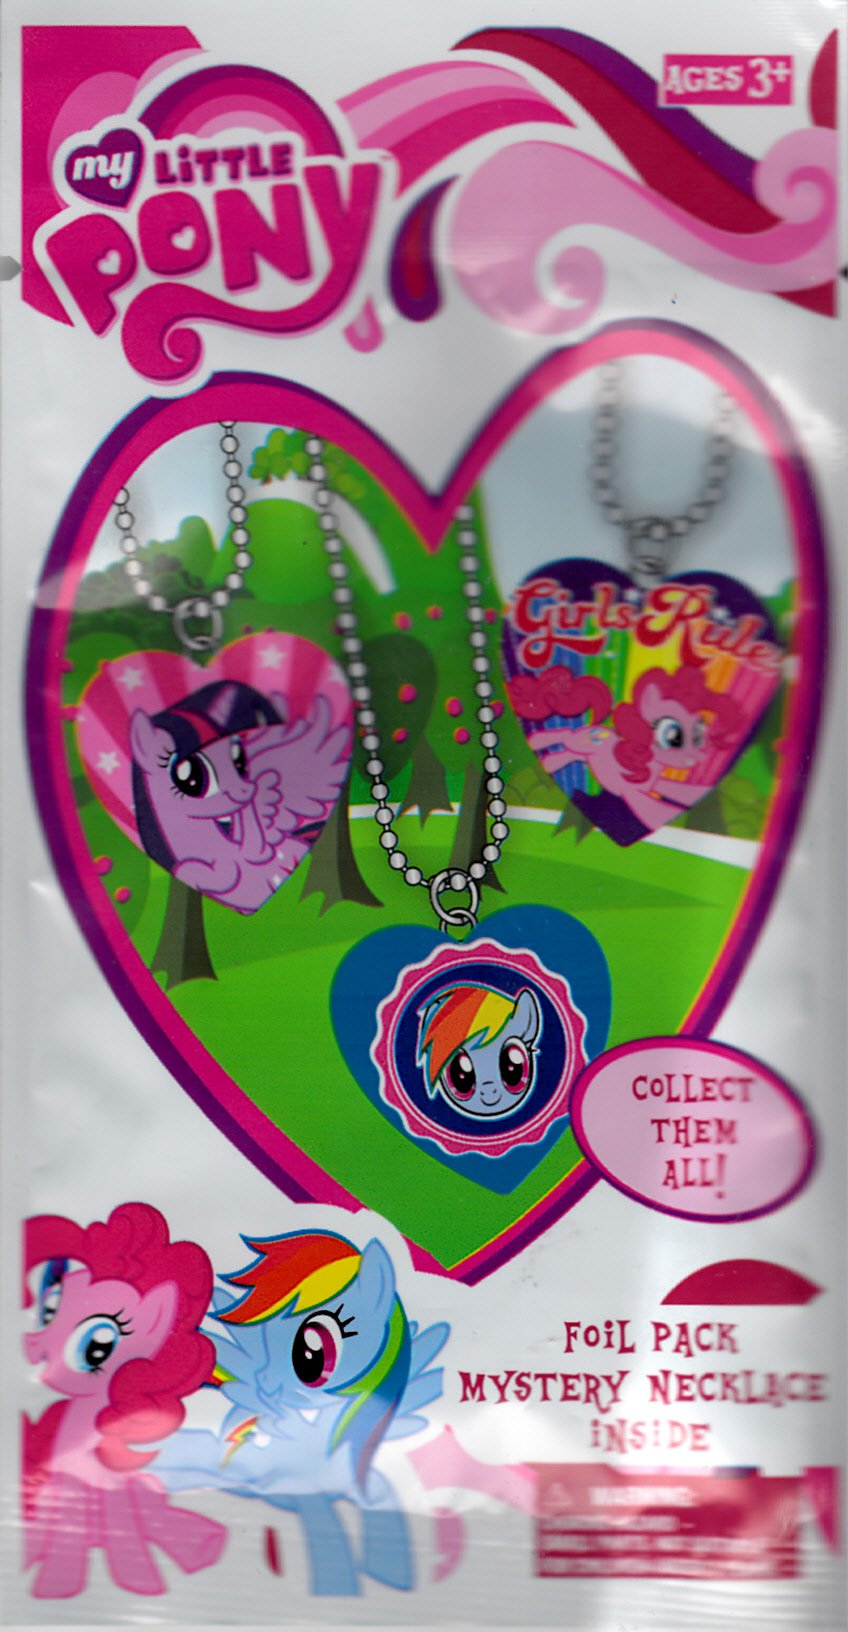 My Little Pony Mystery Necklace Blind Foil Pack